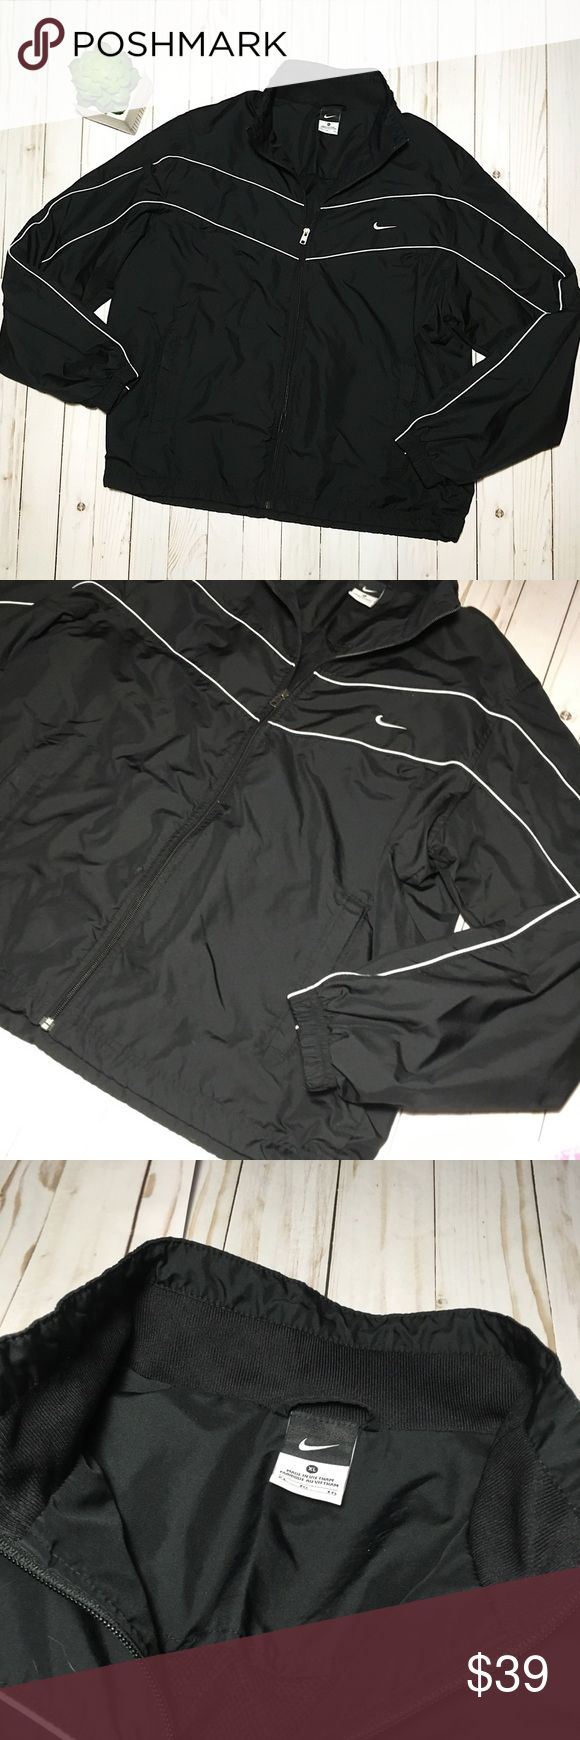 Vintage Nike Black Windbreaker Pre-owned black Nike windbreaker jacket with white Nike tick & white lines. In excellent condition- no holes or stains. Size XL but please see measurements below. Has place to thread headphone wire through on the inside.  APPROX. MEASUREMENTS (LAYING FLAT): bust: 20.5in length: 28in sleeve length: 26in Nike Jackets & Coats Windbreakers